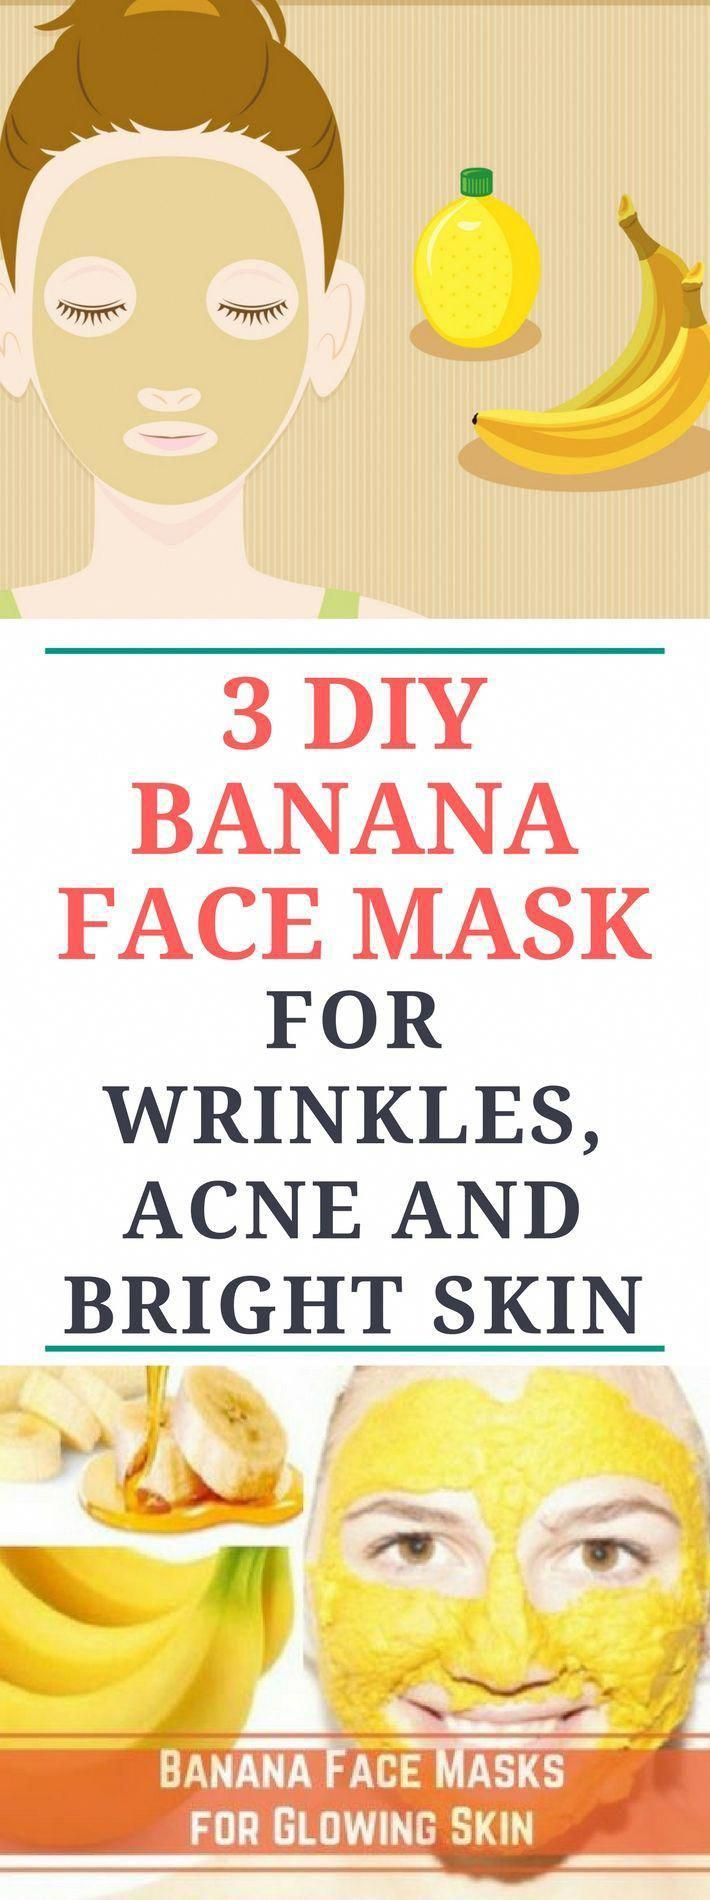 Photo of 3 DIY Banana Face Mask For Wrinkles, Acne and Bright Skin #coconutoilforwrinkles…